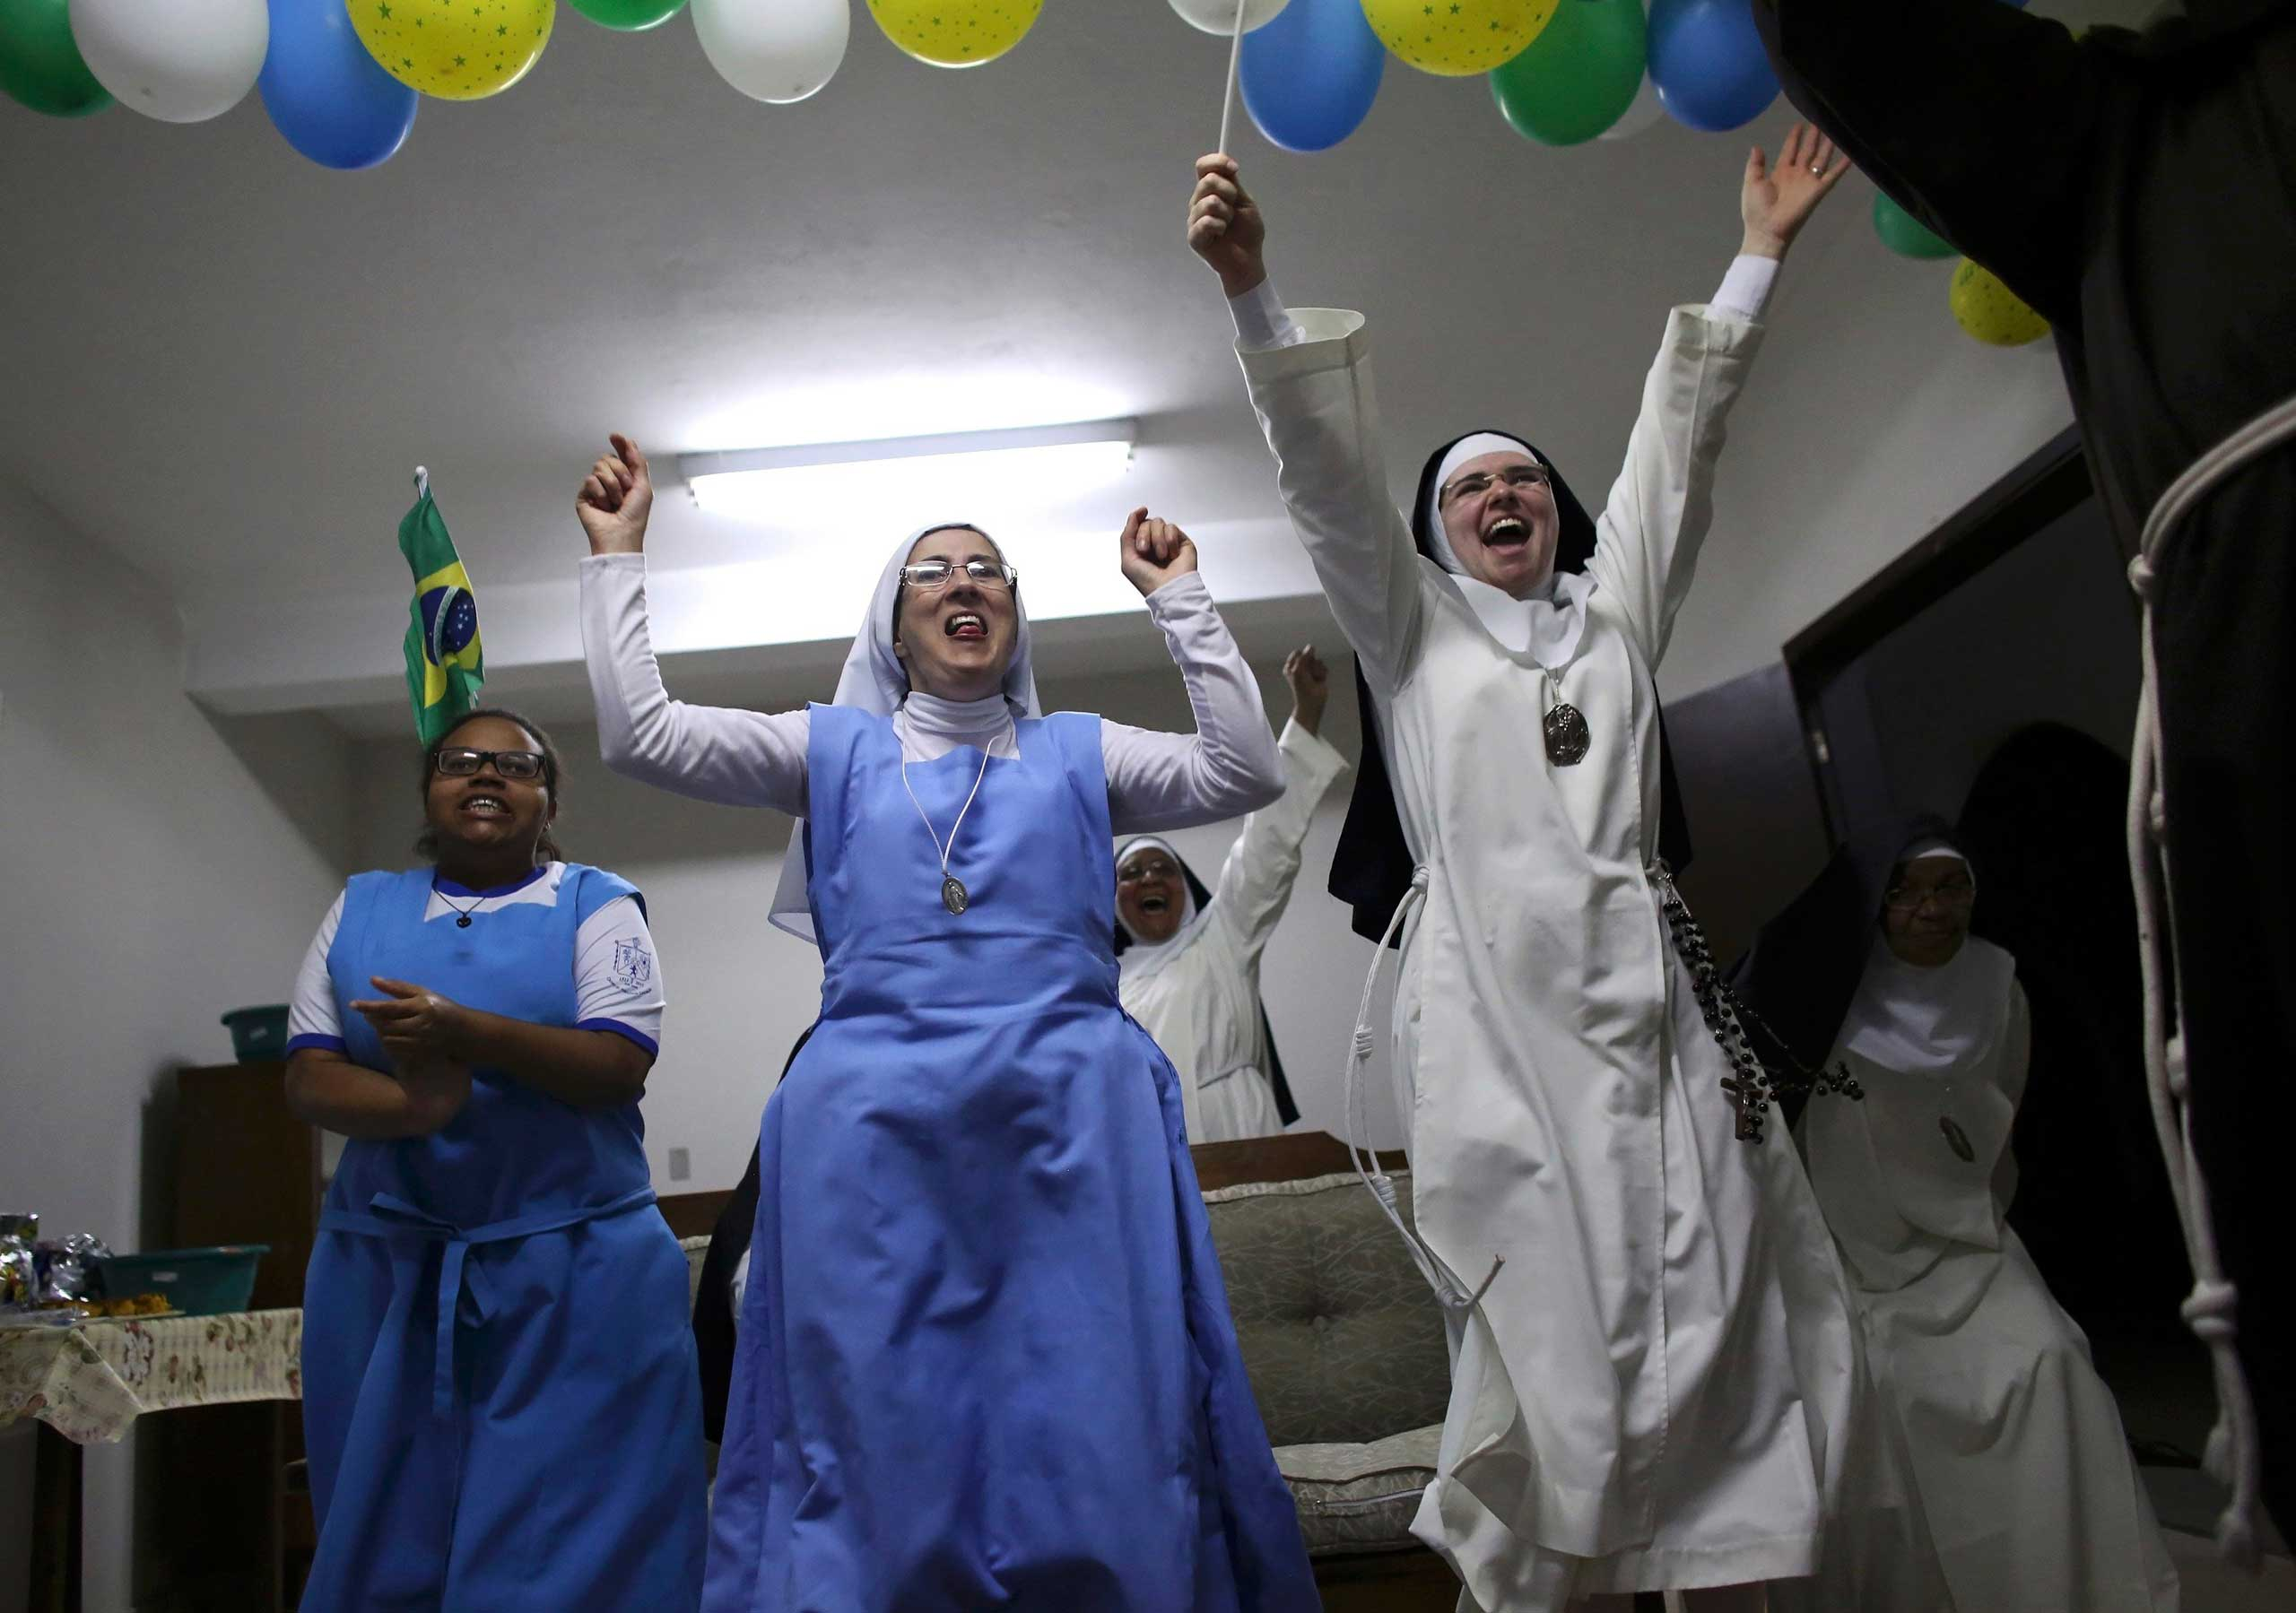 Nuns from the enclosed monastery of Imaculada Conceicao celebrate Brazil's victory as they watch on television at the end of the 2014 World Cup quarter-final soccer match between Brazil and Colombia, in Piratininga, Sao Paulo state, Brazil, July 4, 2014.